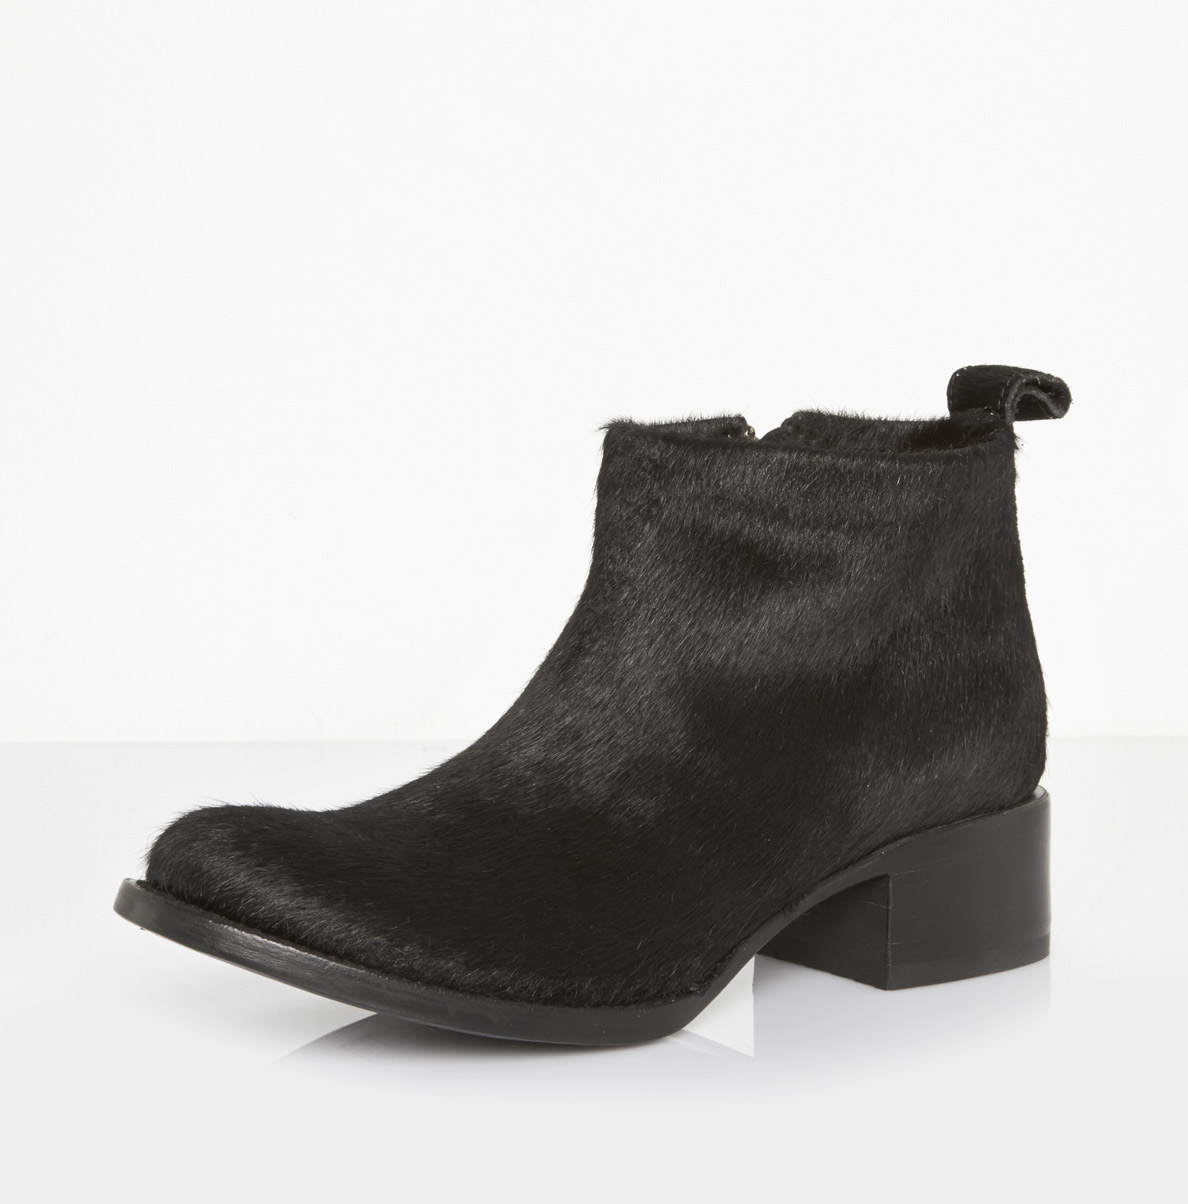 Elizabeth and james Ava Boots in Black | Lyst